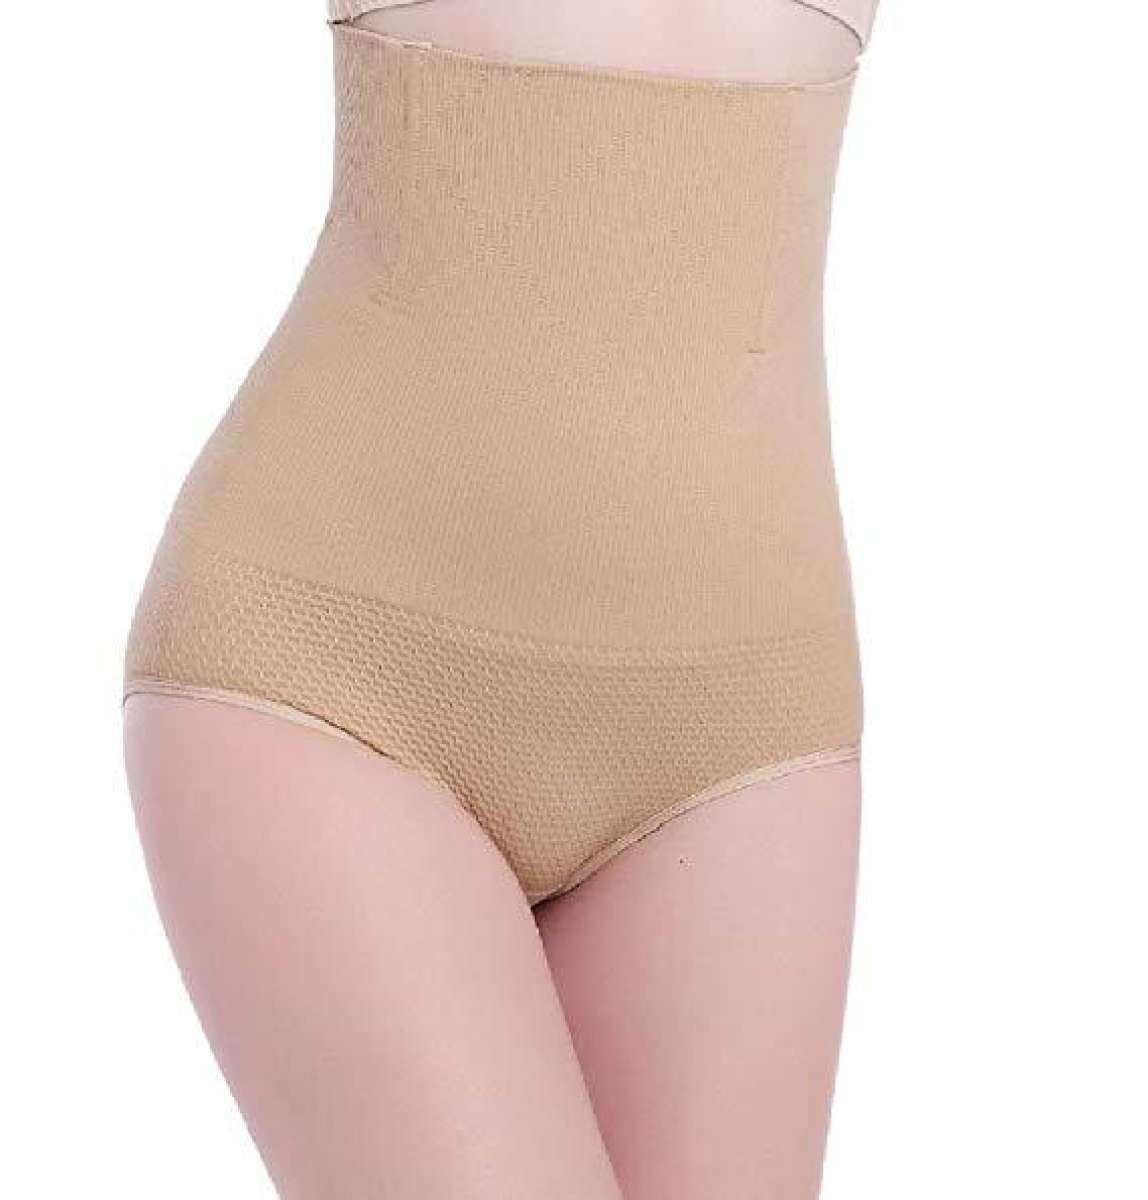 b7107d73204 Shapewear In Nepal At Best Prices - Daraz.com.np